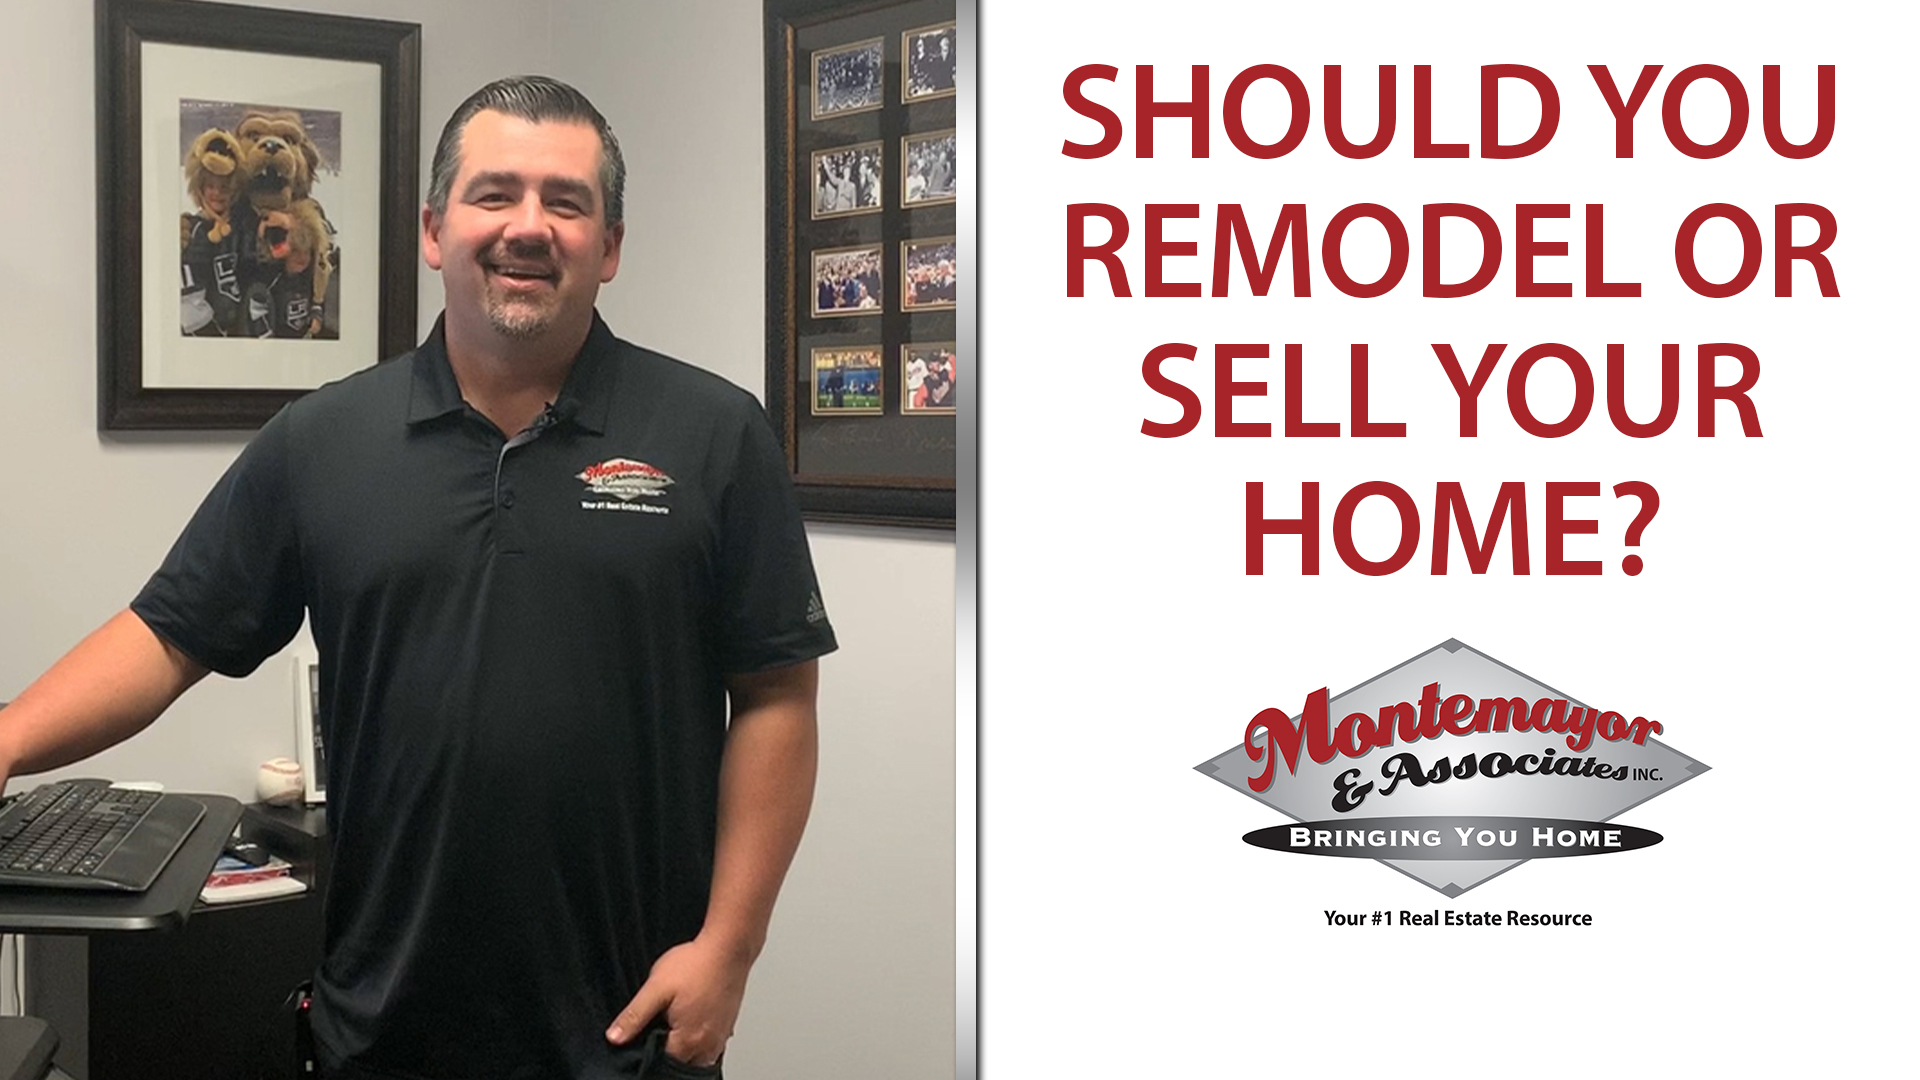 Deciding Whether to Remodel or Sell Your Home